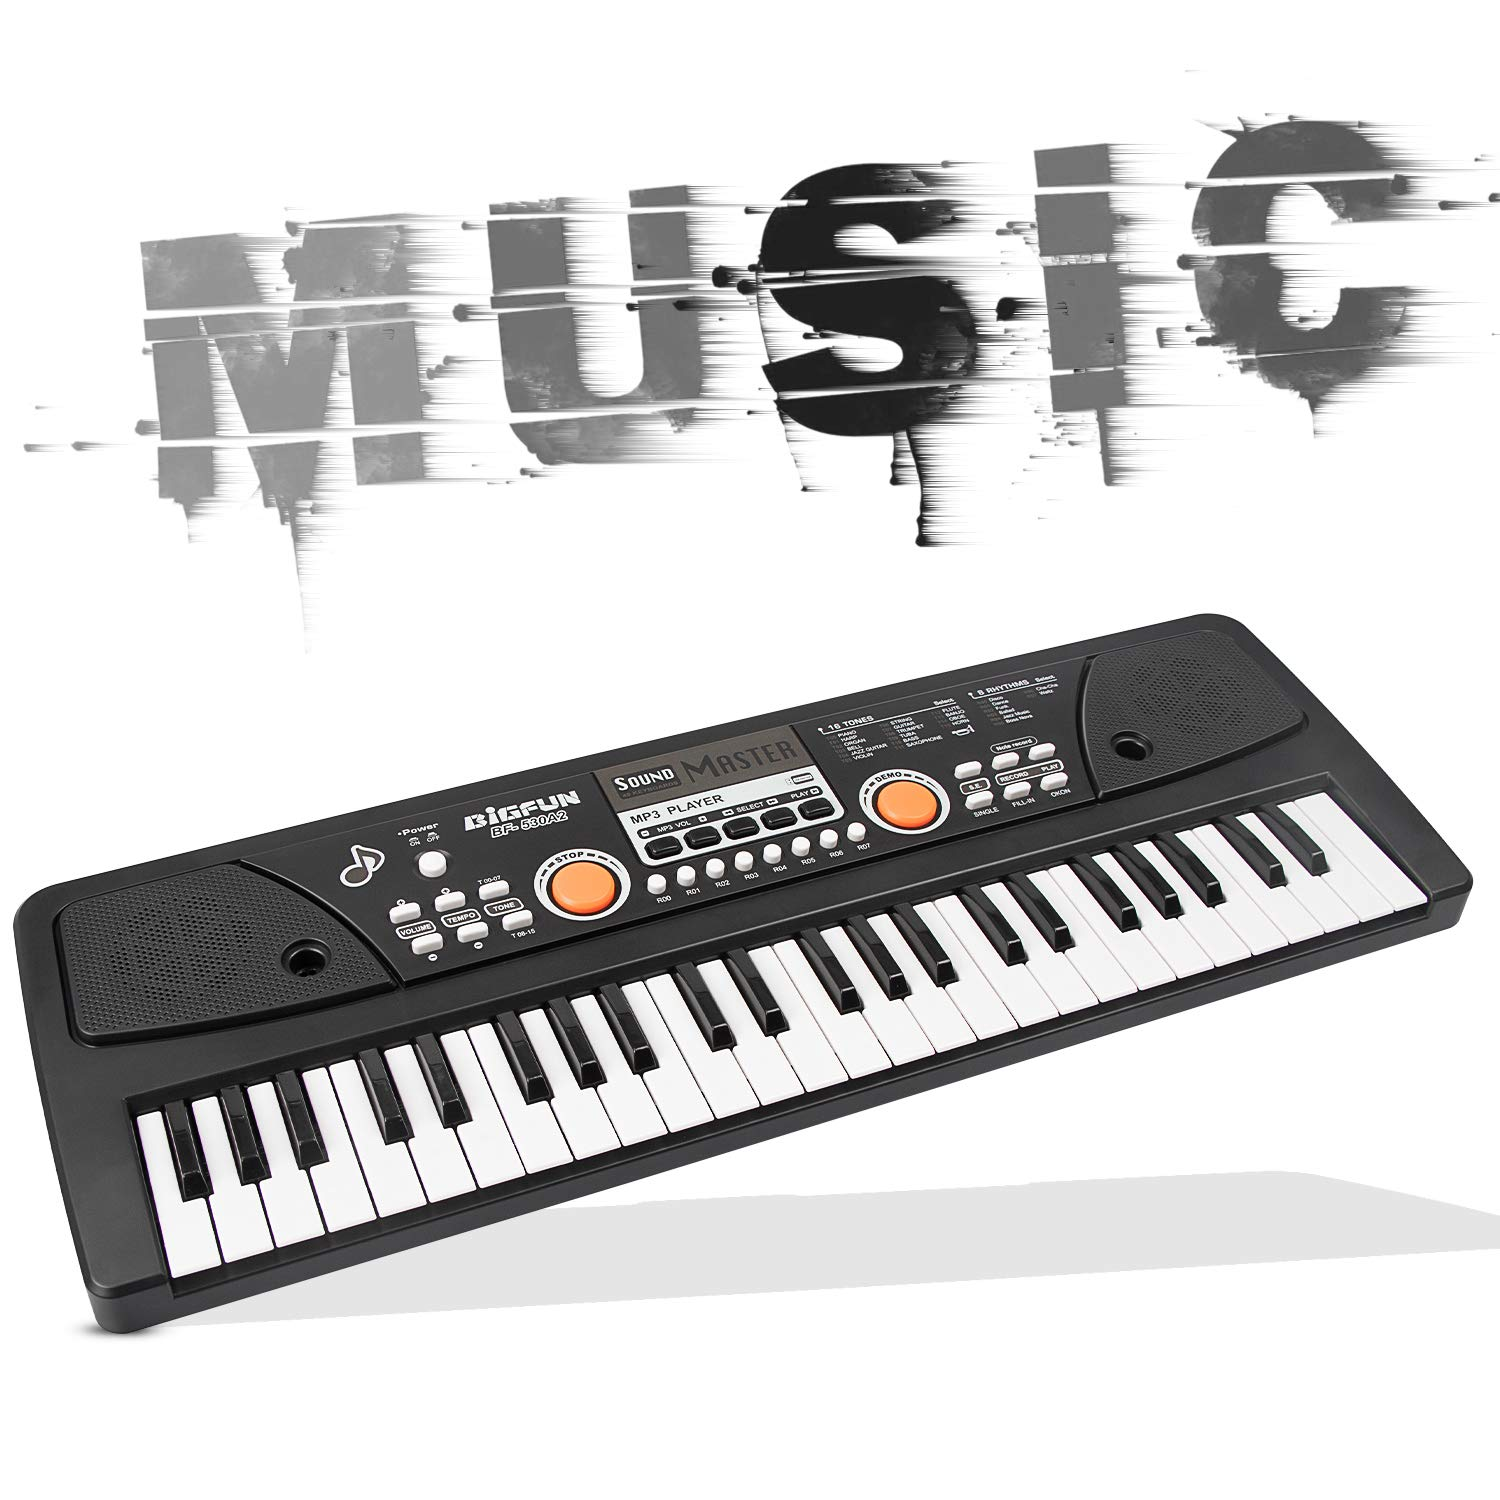 AIMEDYOU 49 Keys Piano Keyboard for Kids Multifunction Portable Piano Electronic Keyboard Music Instrument Birthday Xmas Day Gifts for Kids by AIMEDYOU (Image #3)